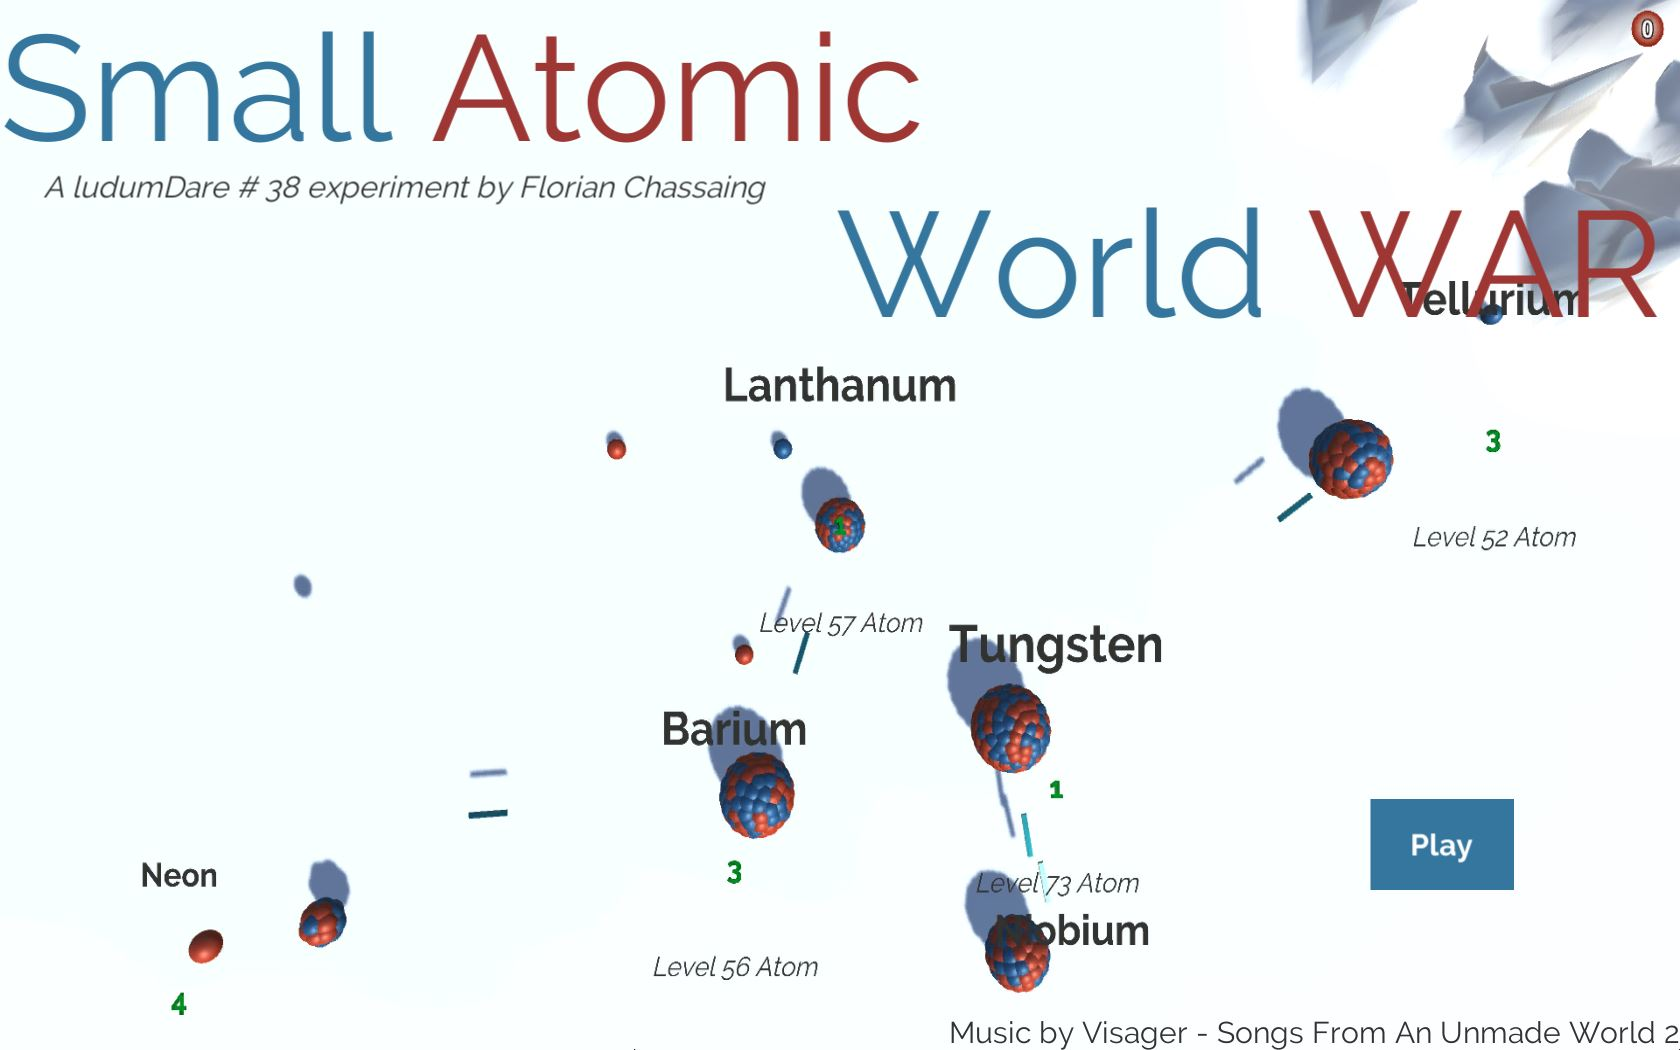 Small Atomic World War